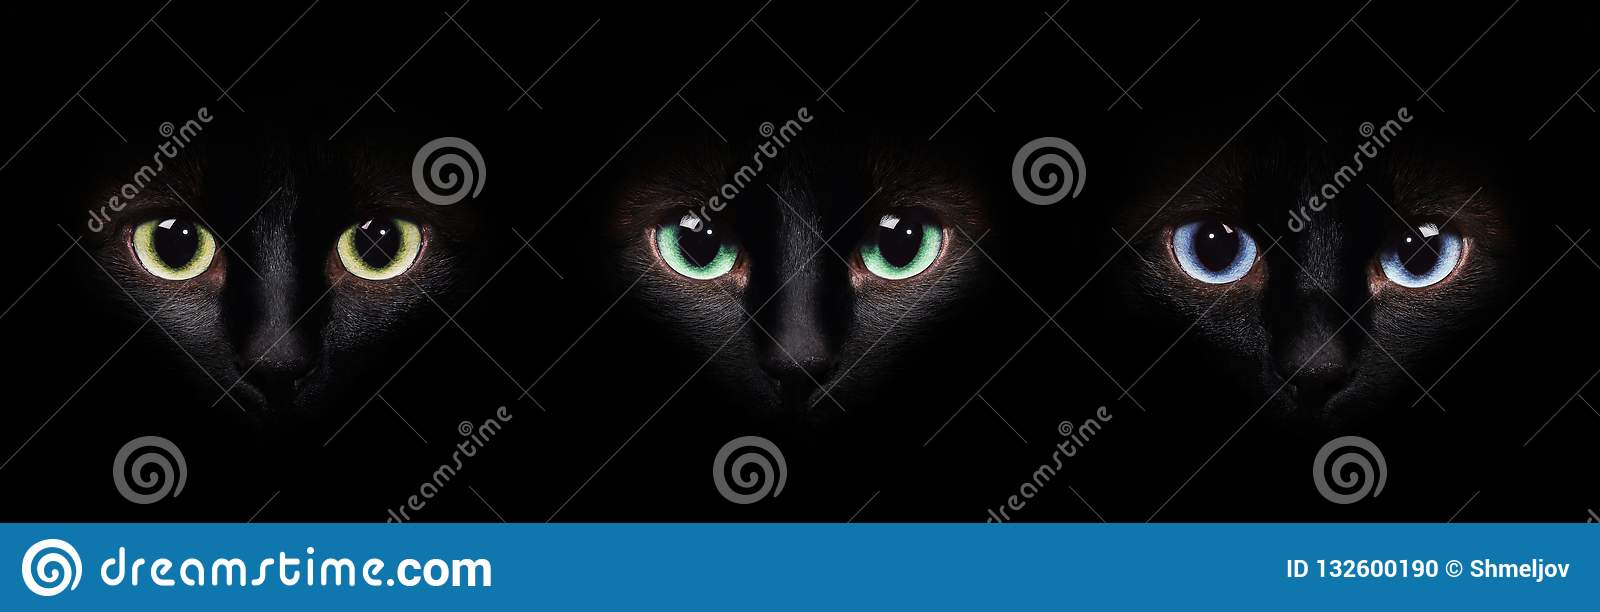 Eyes of the siamese cat in the darkness. Different eyes collage.